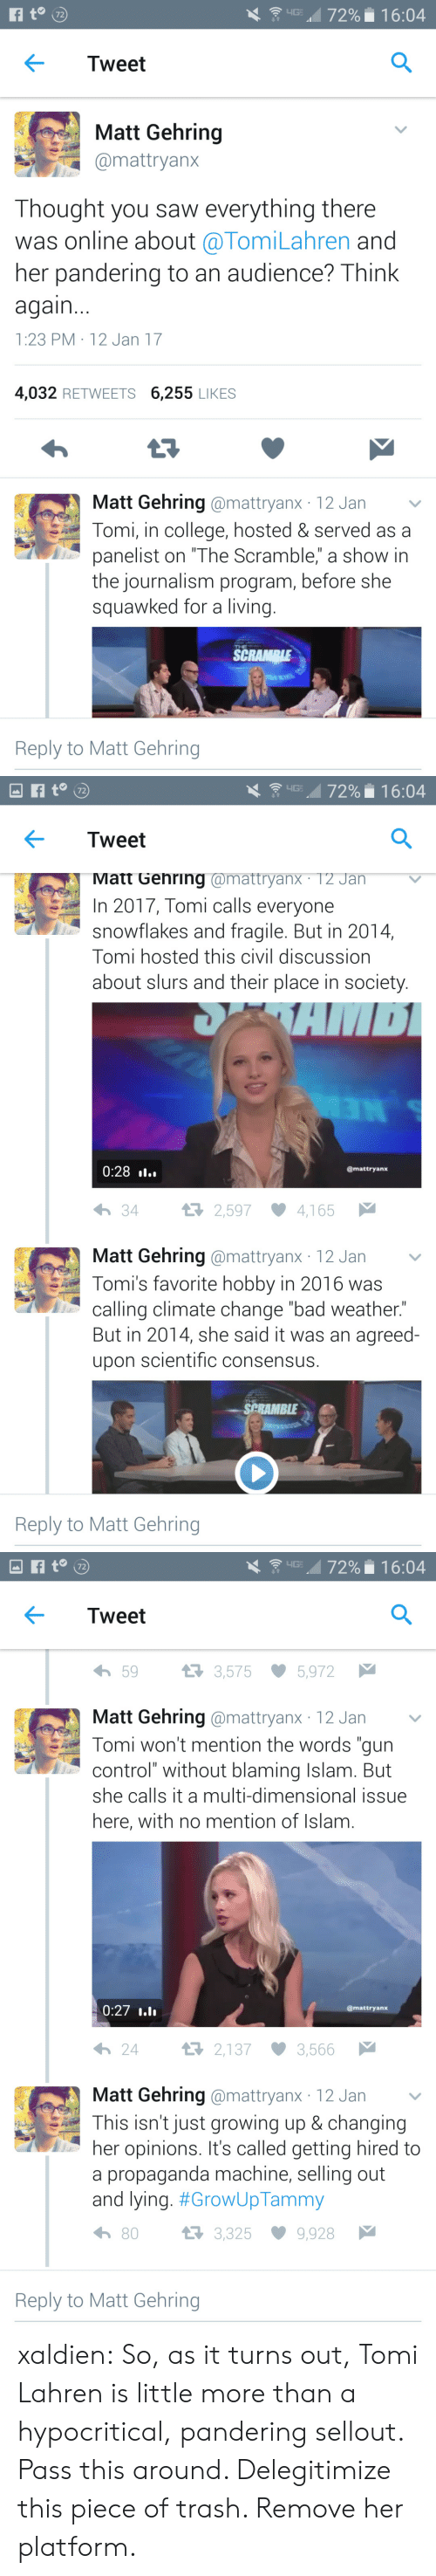 "Bad, College, and Growing Up: 72  Tweet  Matt Gehring  mattryanx  Thought you saw everything there  was online about @TomiLahren and  her pandering to an audience? Think  again  1:23 PM 12 Jan 17  4,032 RETWEETS 6,255 LIKES  Matt Gehring @mattryanx 12 Jan v  Tomi, in college, hosted & served as a  panelist on ""The Scramble,"" a show in  the journalism program, before she  squawked for a living.  SCRAMRI  Reply to Matt Gehring   \  up , 72% . 1 6:04  Tweet  Matt Gehring @mattryanX. T2 Jan  In 2017, Tomi calls everyone  snowflakes and fragile. But in 2014,  Tomi hosted this civil discussiorn  about slurs and their place in society  0:28 »l..  @mattryanx  わ34  2,597 ·4,165  Matt Gehring @mattryanx 12 Jan v  Tomi's favorite hobby in 2016 was  calling climate change ""bad weather.""  But in 2014, she said it was an agreed-  upon scientific consensus.  SPRAMBLE  Reply to Matt Gehring   Tweet  わ59  3,575  5,972  Matt Gehring @mattryanx 12 Jan  Tomi won't mention the words ""gun  control"" without blaming Islam. But  she calls it a multi-dimensional issue  here, with no mention of Islam  0:27  @mattryanx  24  2,137 3,566  Matt Gehring @mattryanx 12 Jan  This isn't just growing up & changing  her opinions. It's called getting hired to  a propaganda machine, selling out  and lying. #GrowUpTammy  h 80  3,325 9,928  Reply to Matt Gehring xaldien: So, as it turns out, Tomi Lahren is little more than a hypocritical, pandering sellout.   Pass this around. Delegitimize this piece of trash. Remove her platform."